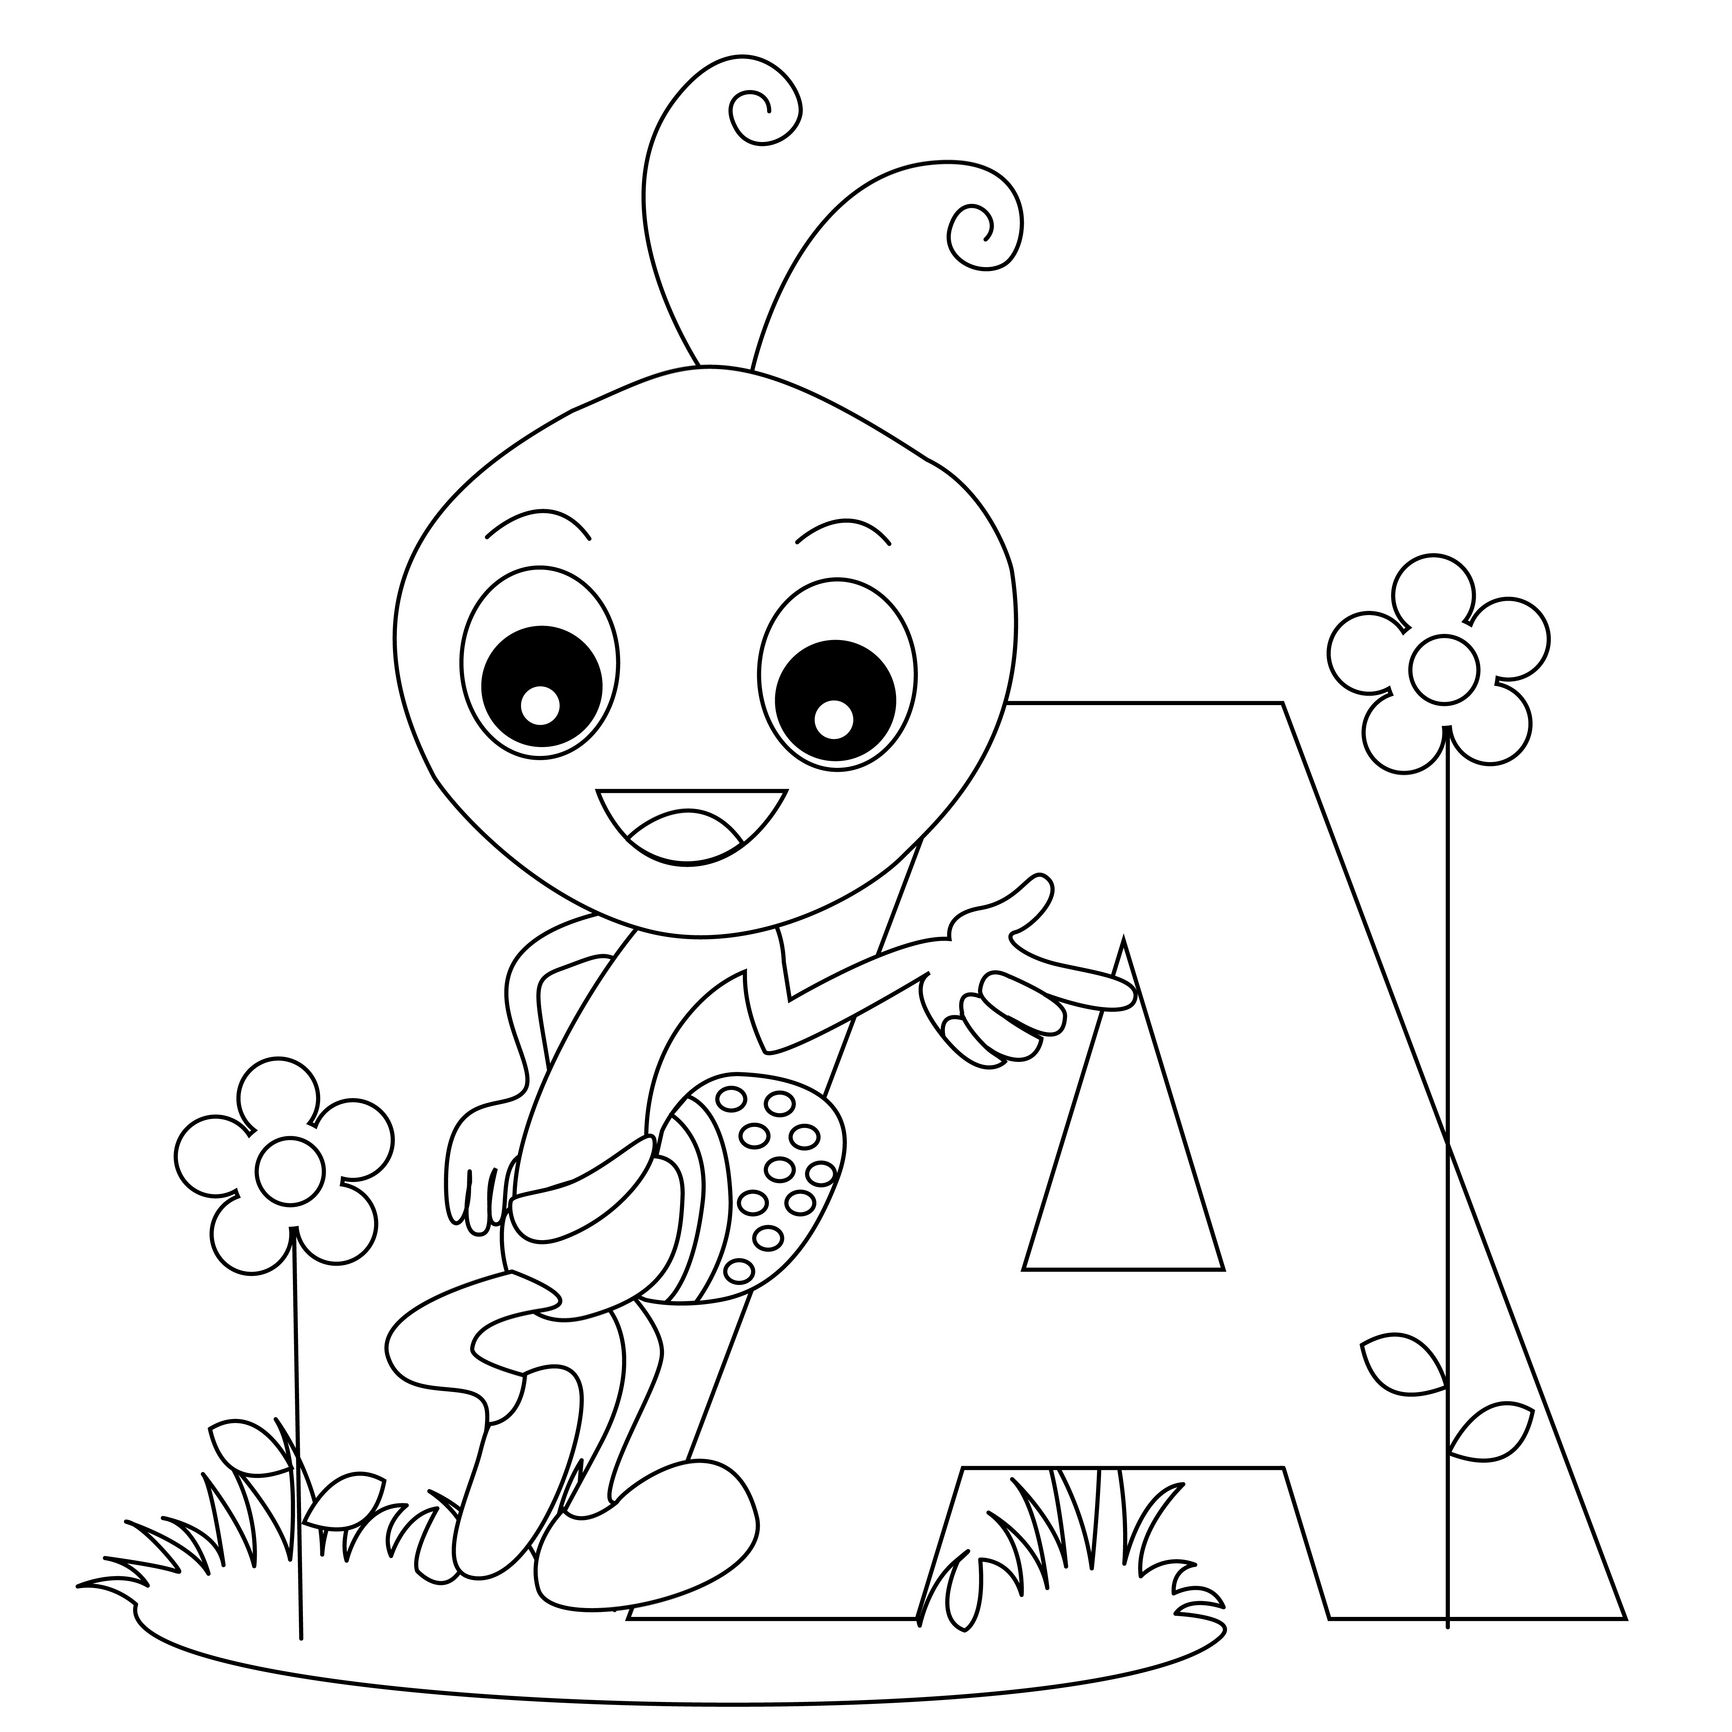 Letter Coloring Pages For Adults at GetDrawings.com | Free for ...